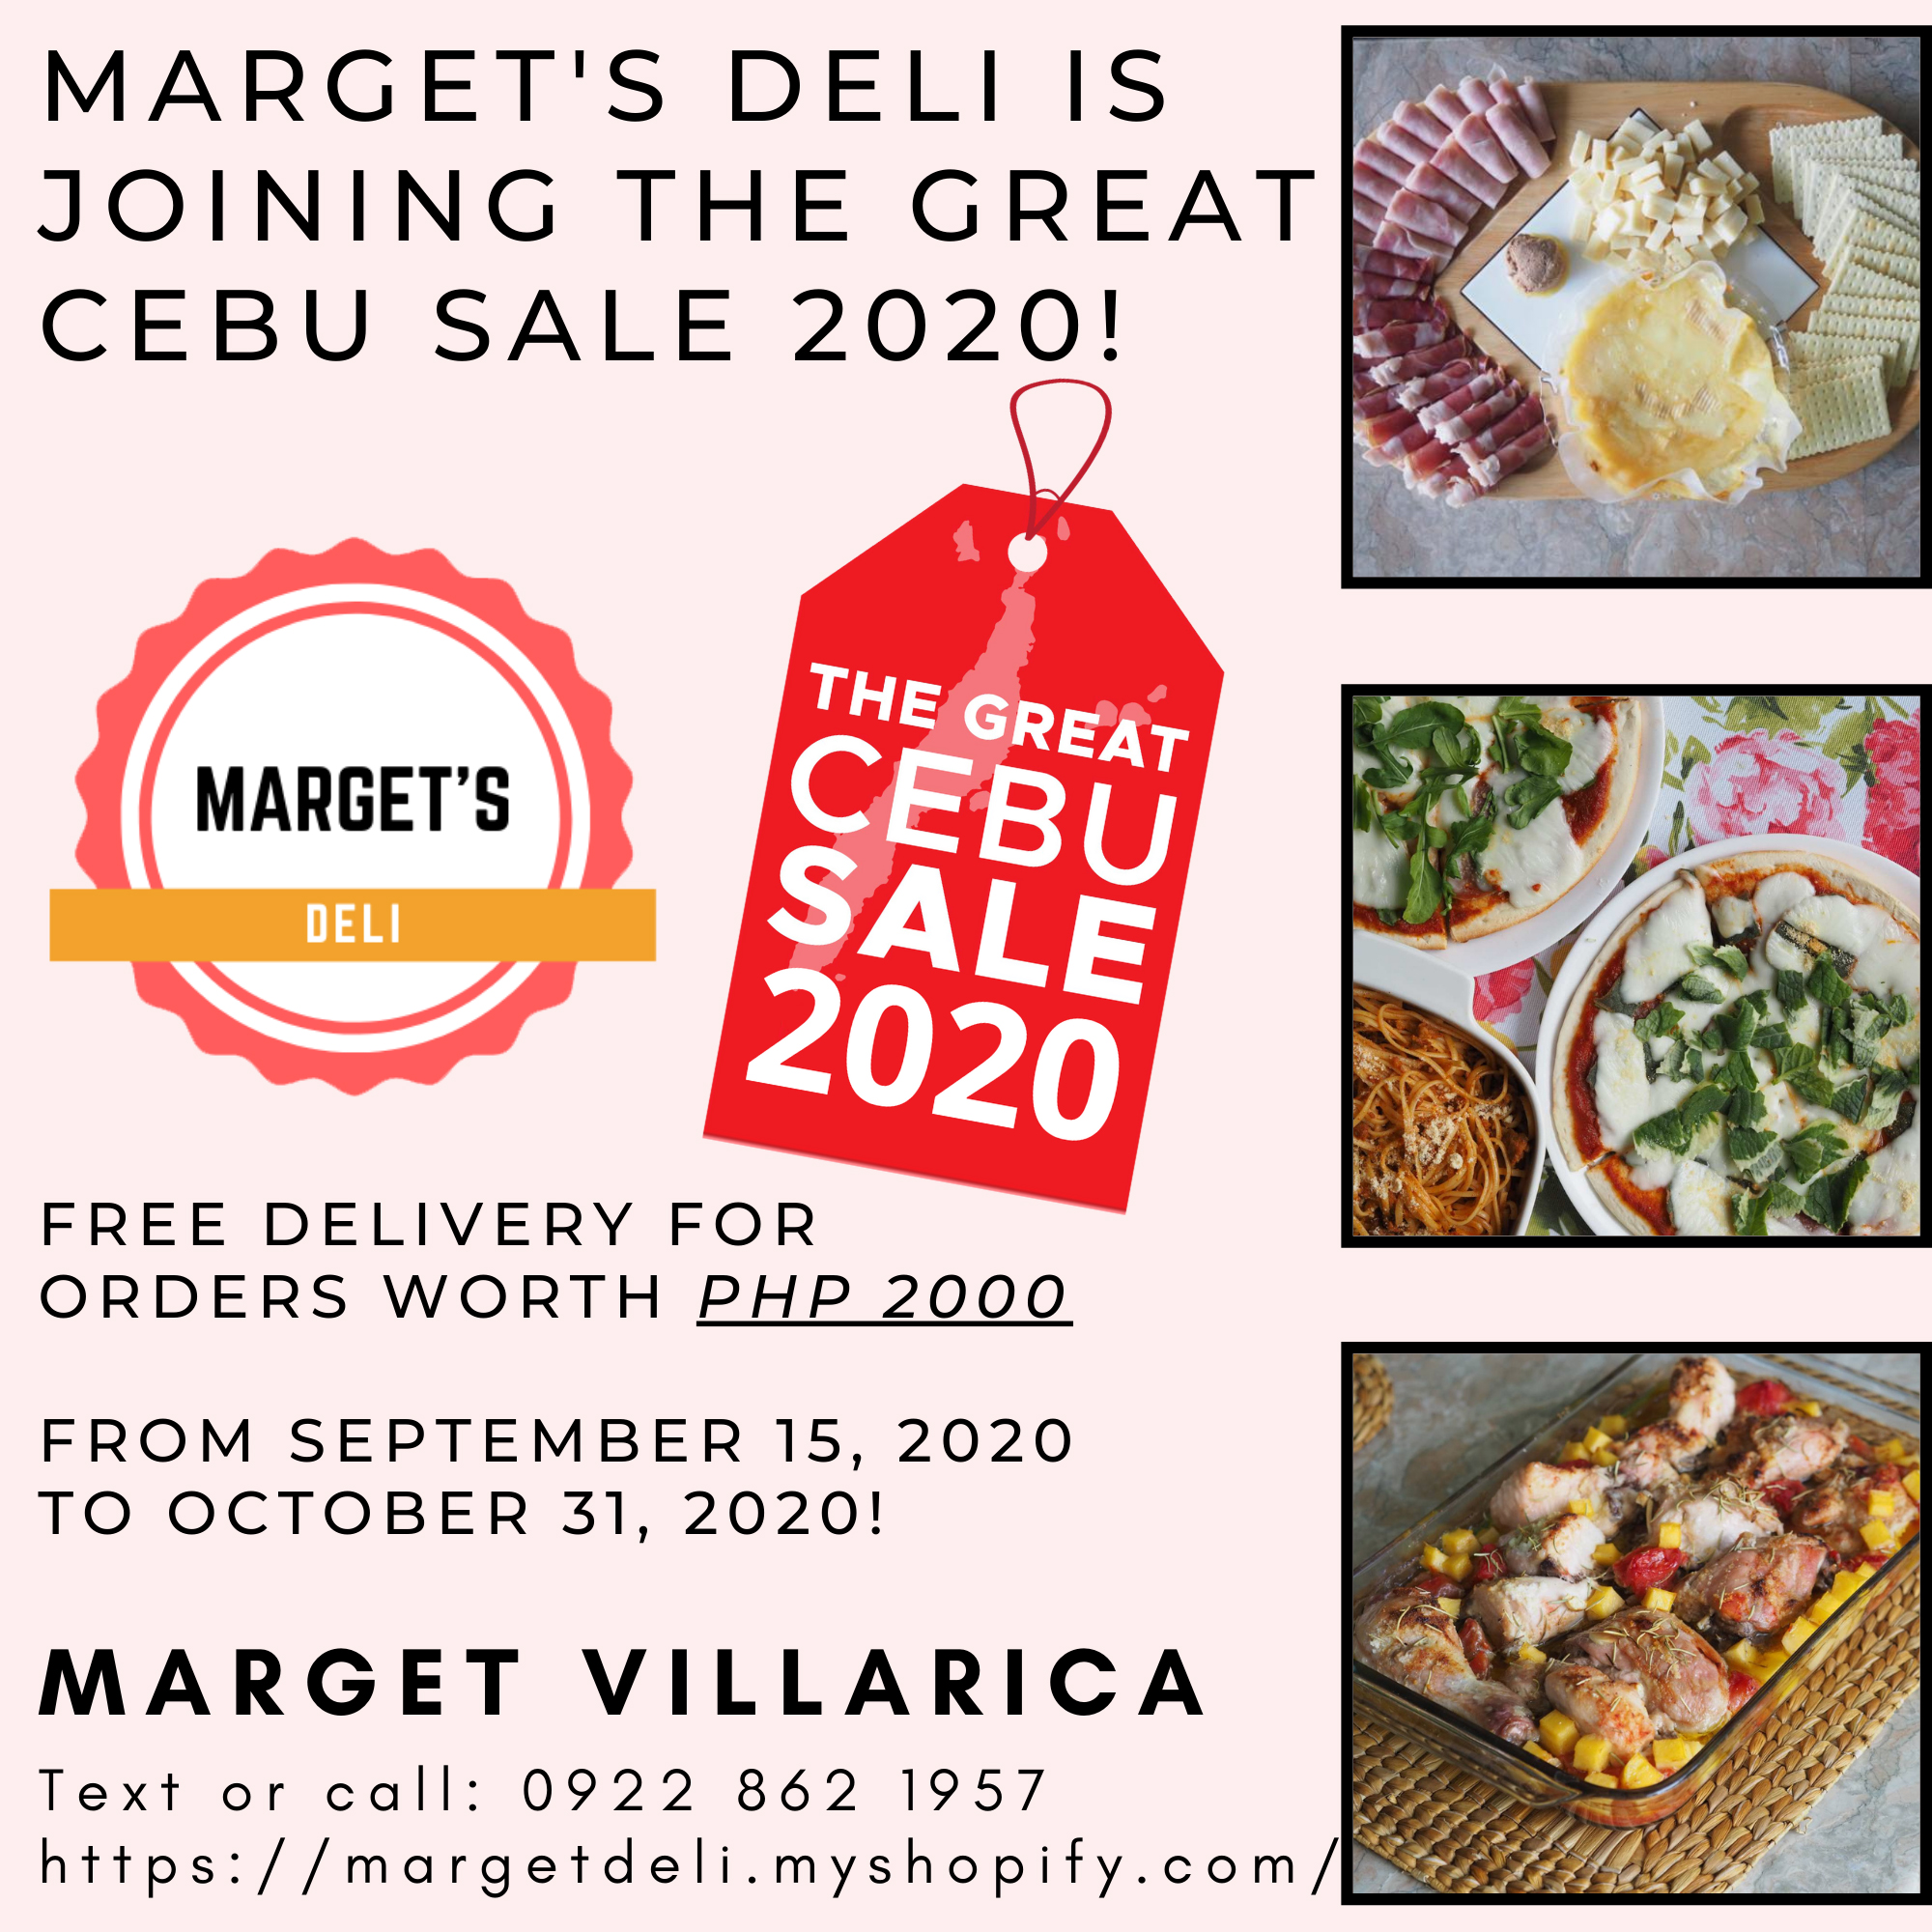 Marget's Deli offers free delivery for orders worth P2,000